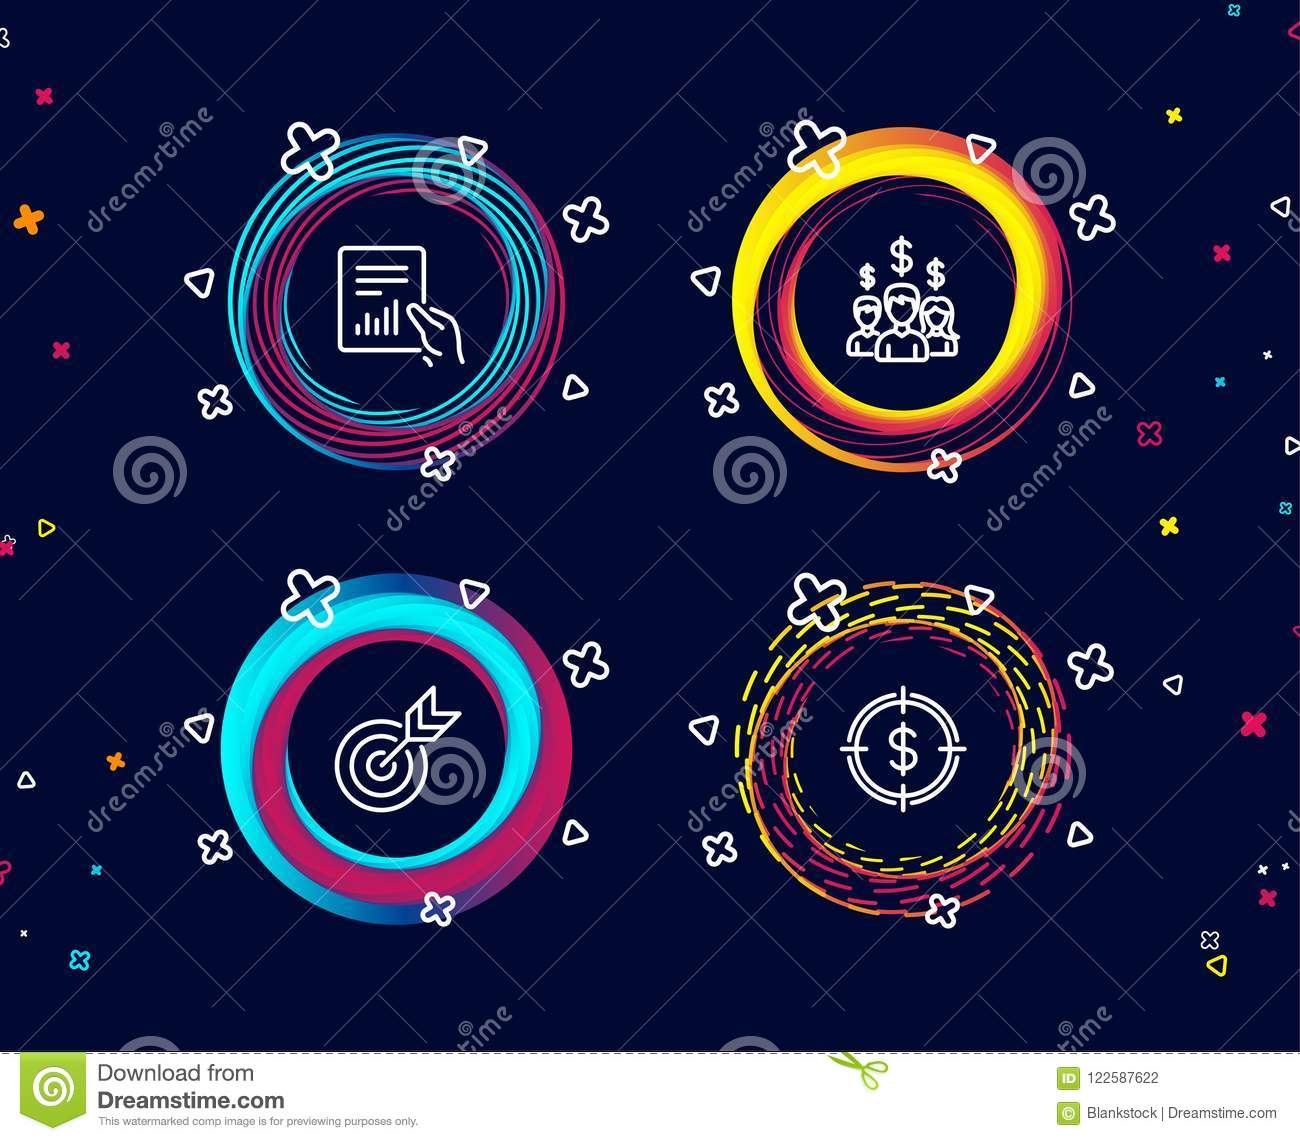 set target document salary employees icons dollar sign targeting file diagram people earnings aim usd circle banners 122587622 target, document and salary employees icons dollar target sign